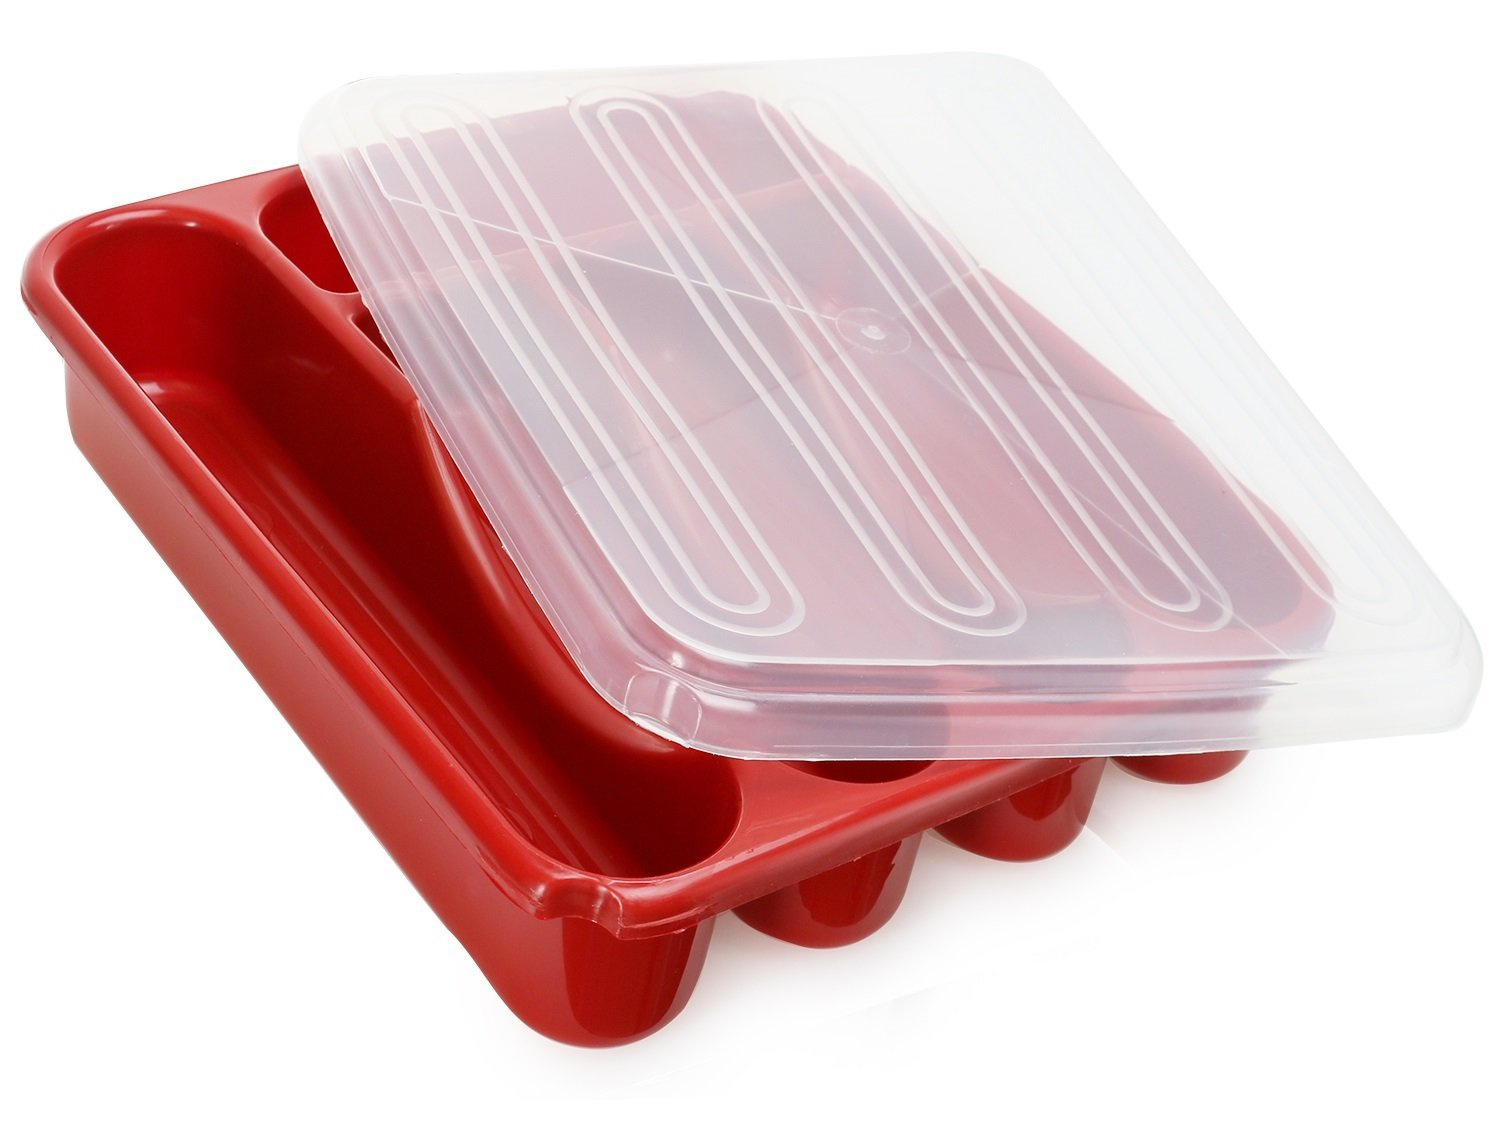 Black Flatware Plastic Tray with Lid Kitchen Cutlery and Utensil Drawer Organizer Container with Covered Top